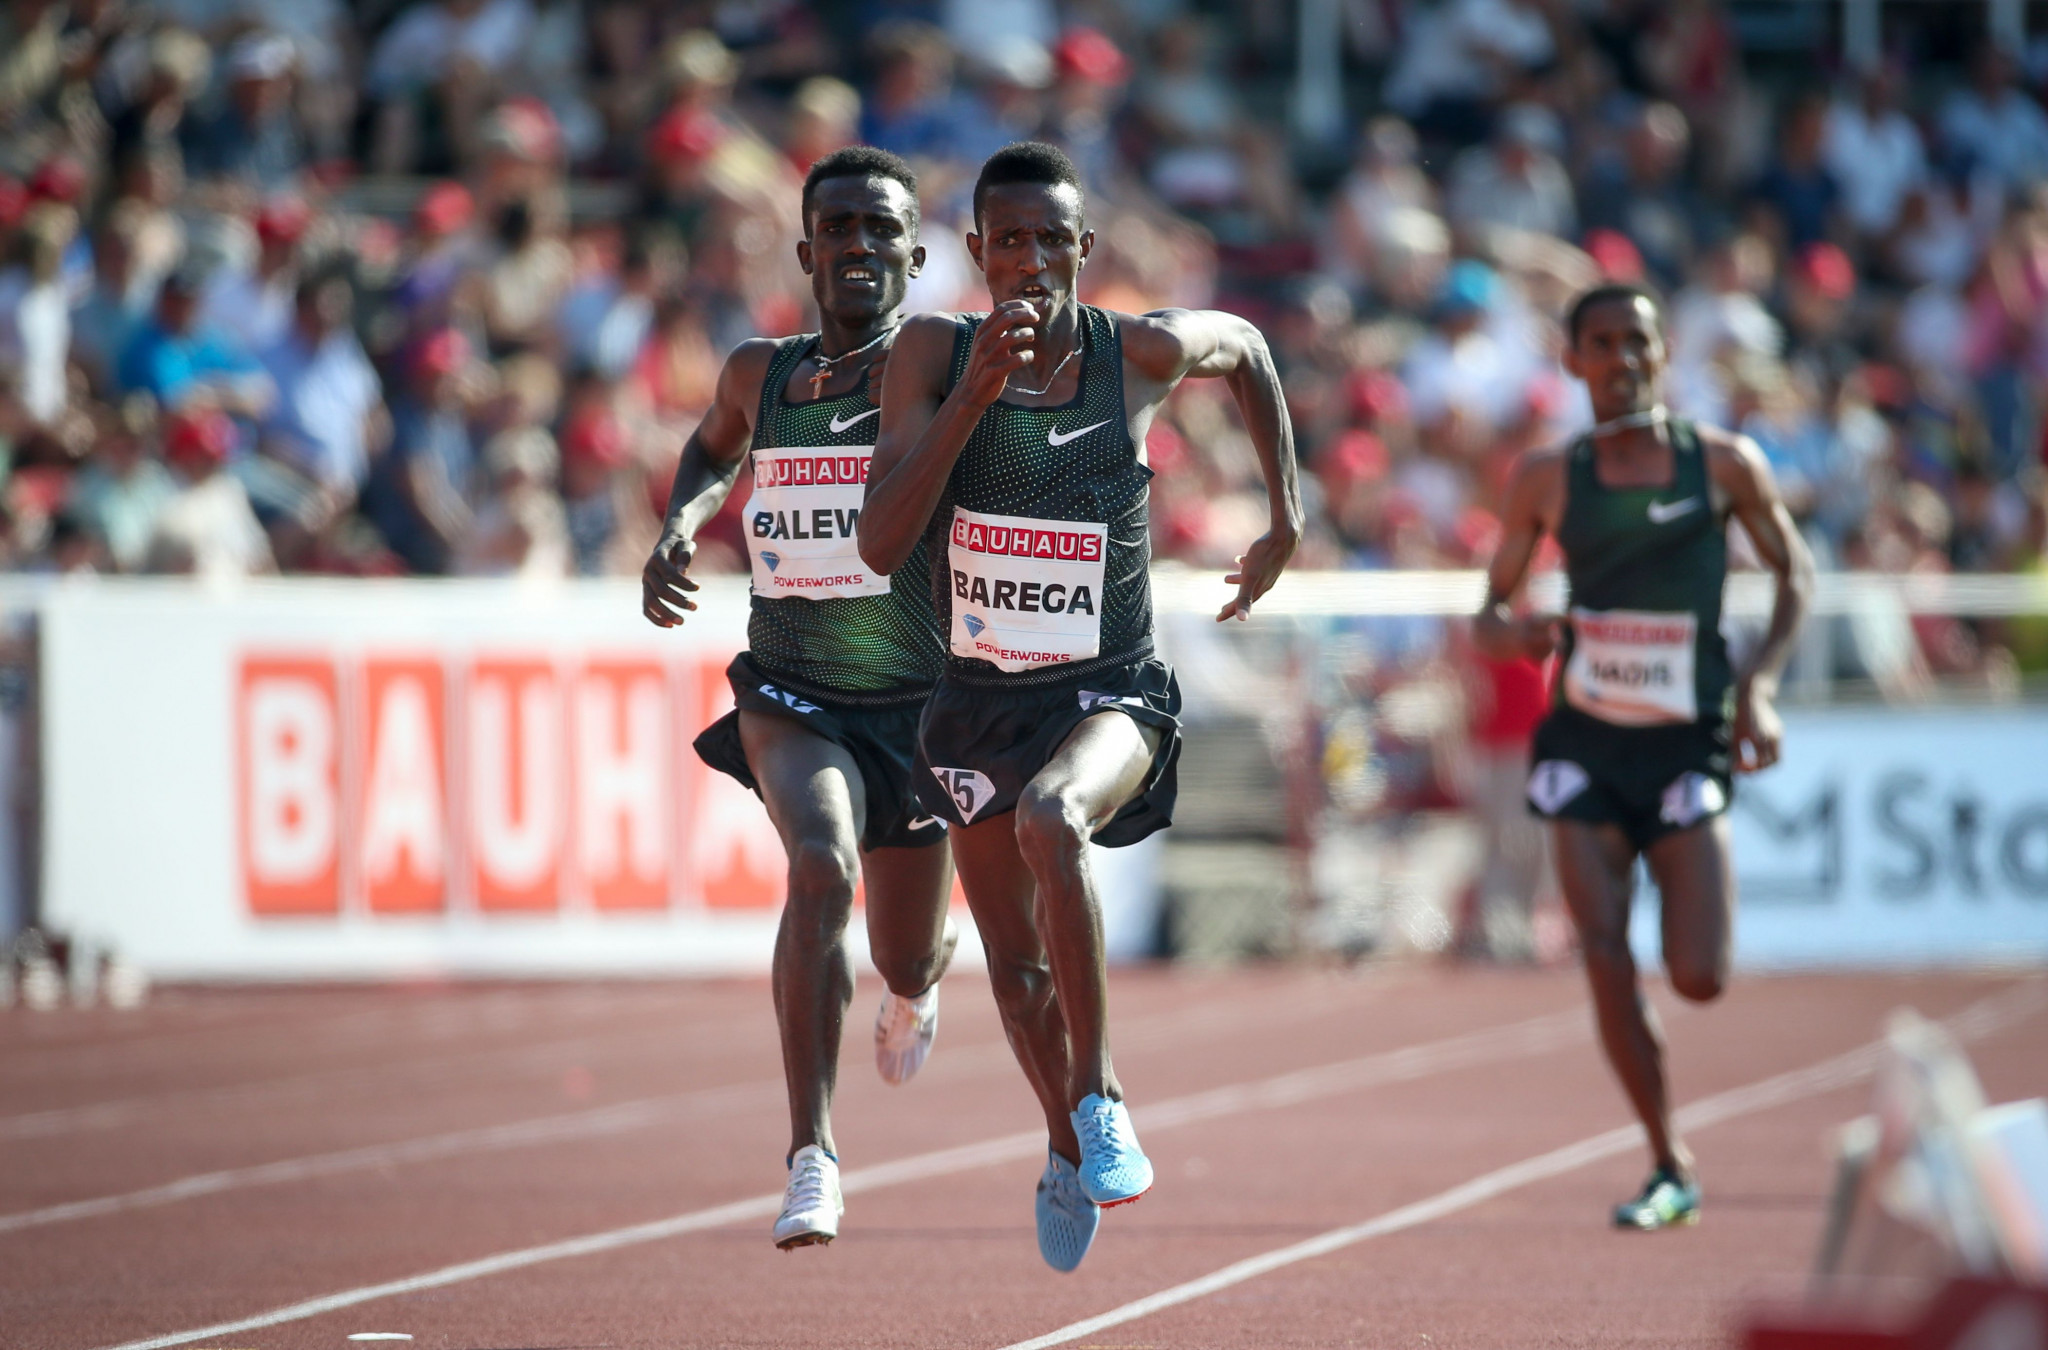 Selemon Barega. pictured in Stockholm, was hauled out of contention by fellow Ethiopian Yomif Kejelcha at tonight's IAAF Diamond League meeting in Lausanne ©Getty Images